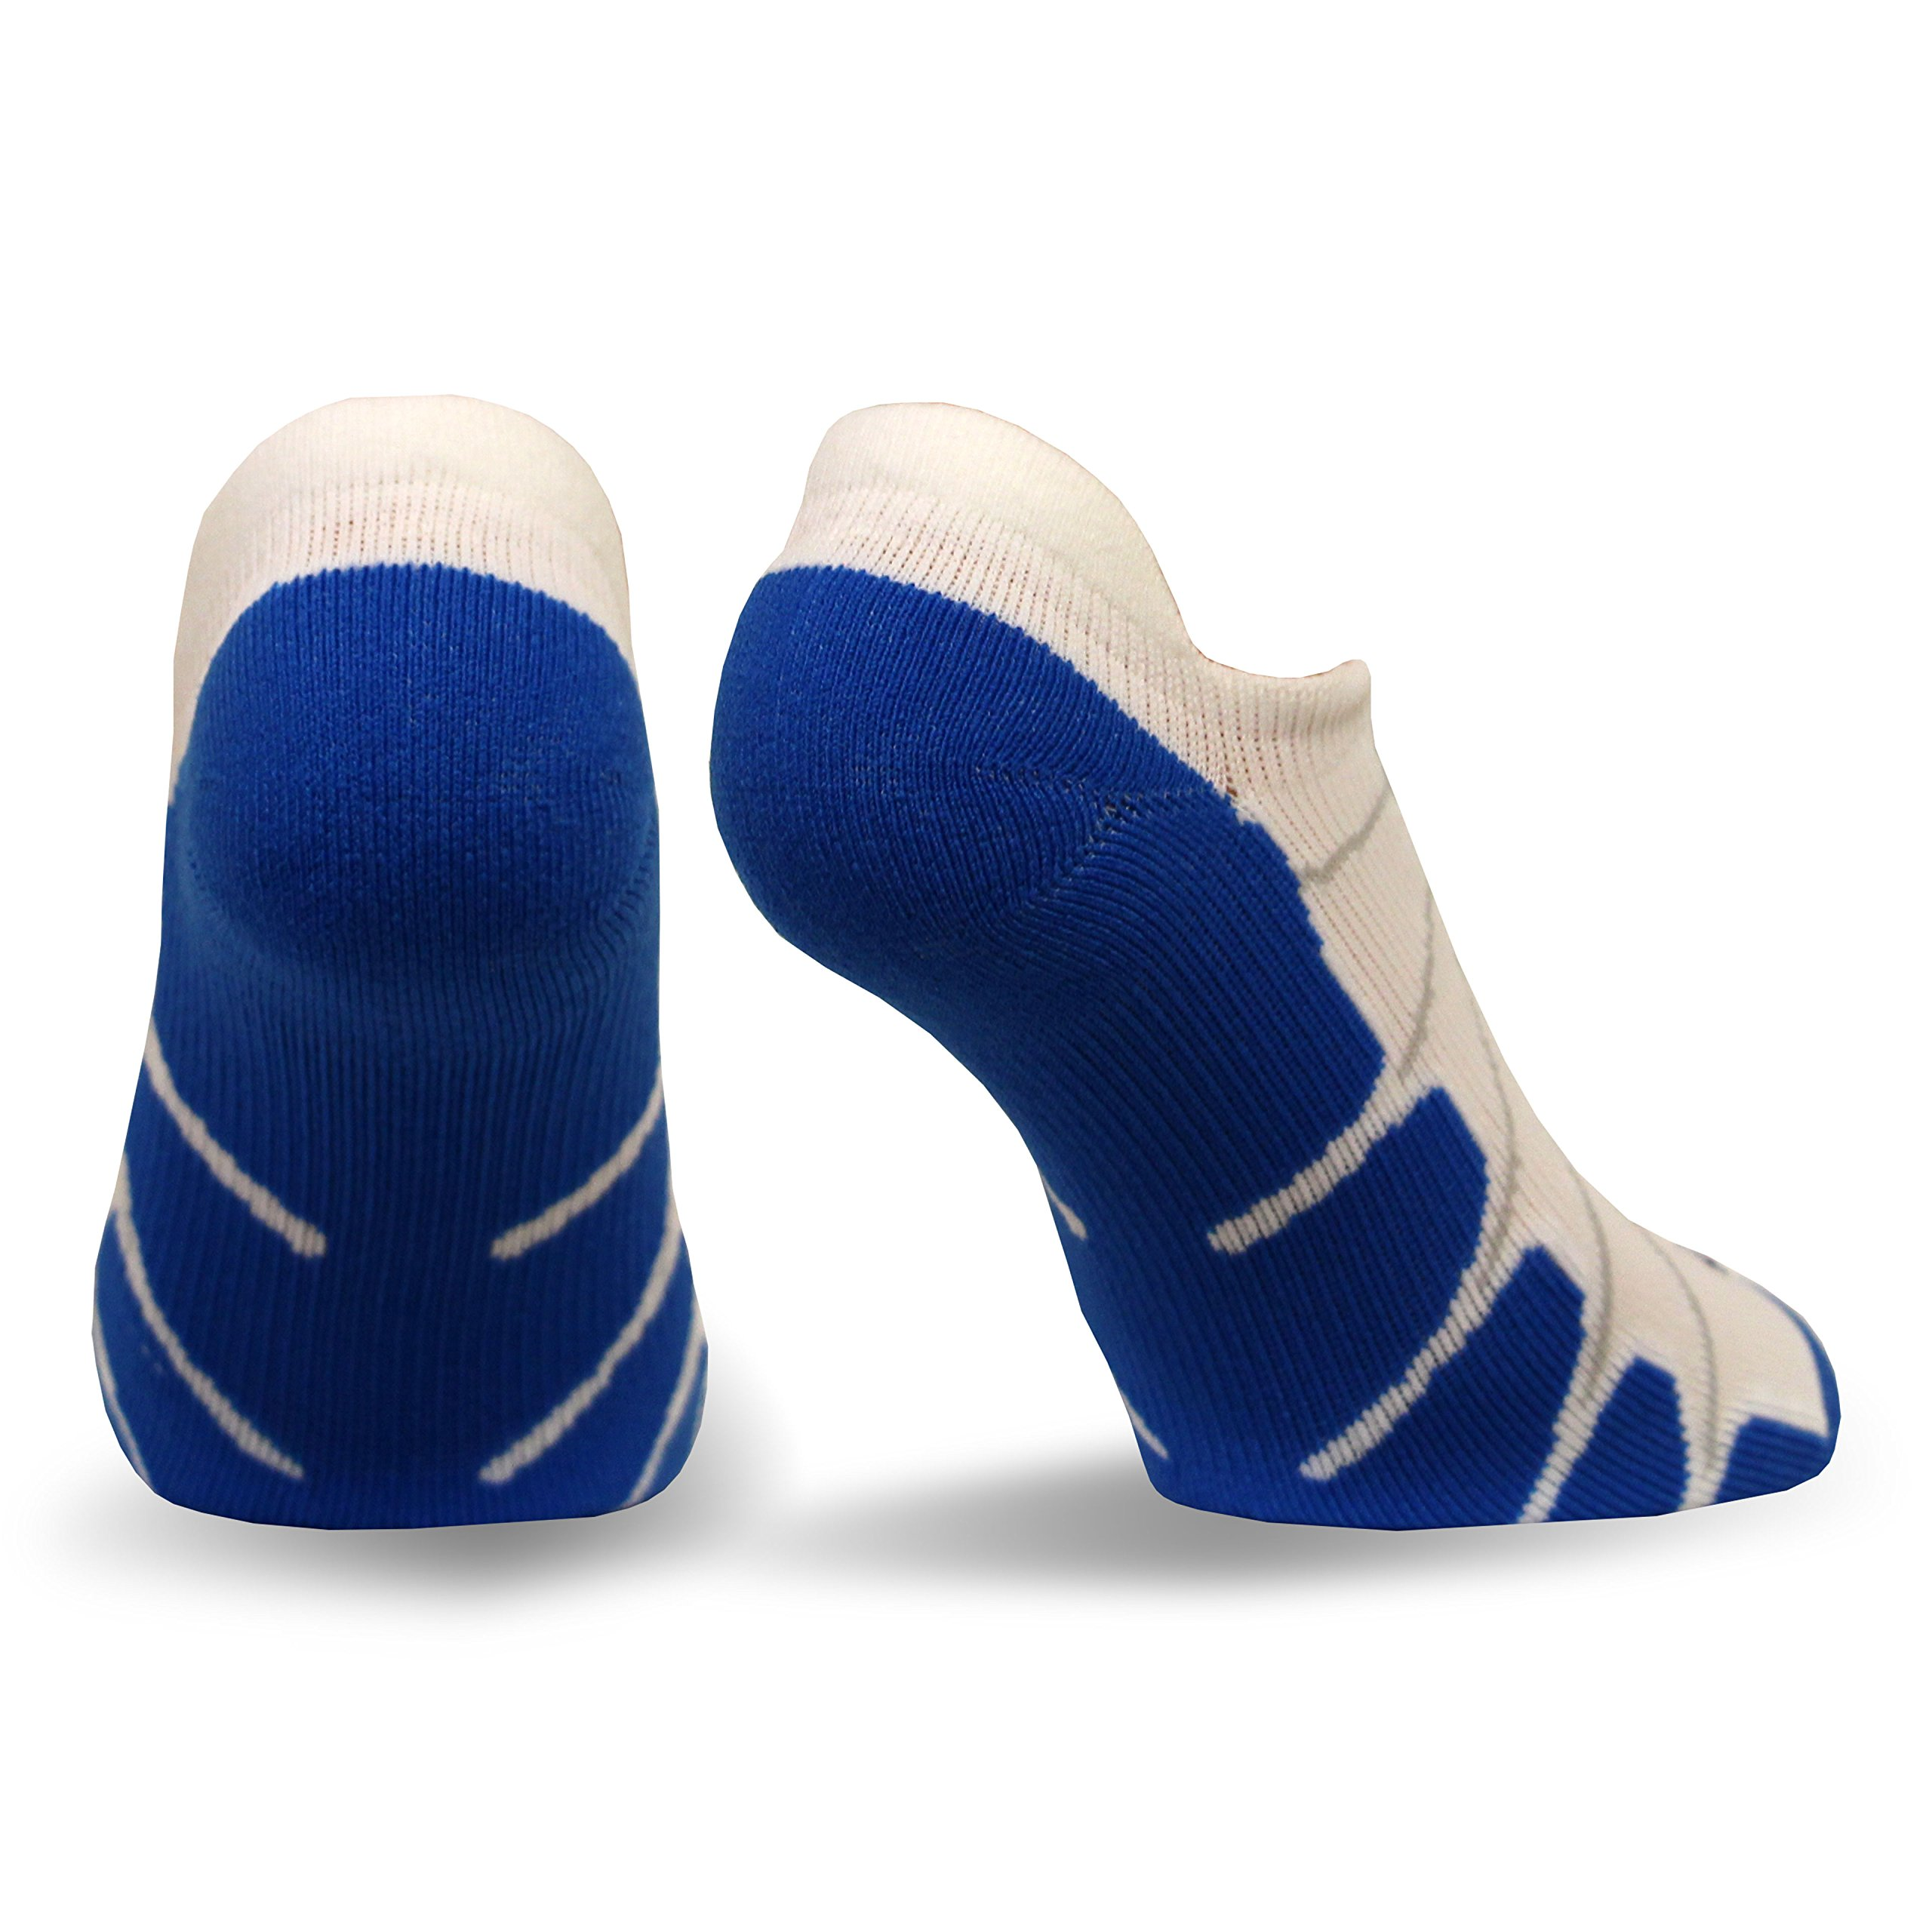 Sox Italy No Show Ghost Socks - Silver Drystat Plantar Support Performance Socks - White/Royal, Small - SS6011 by Sox